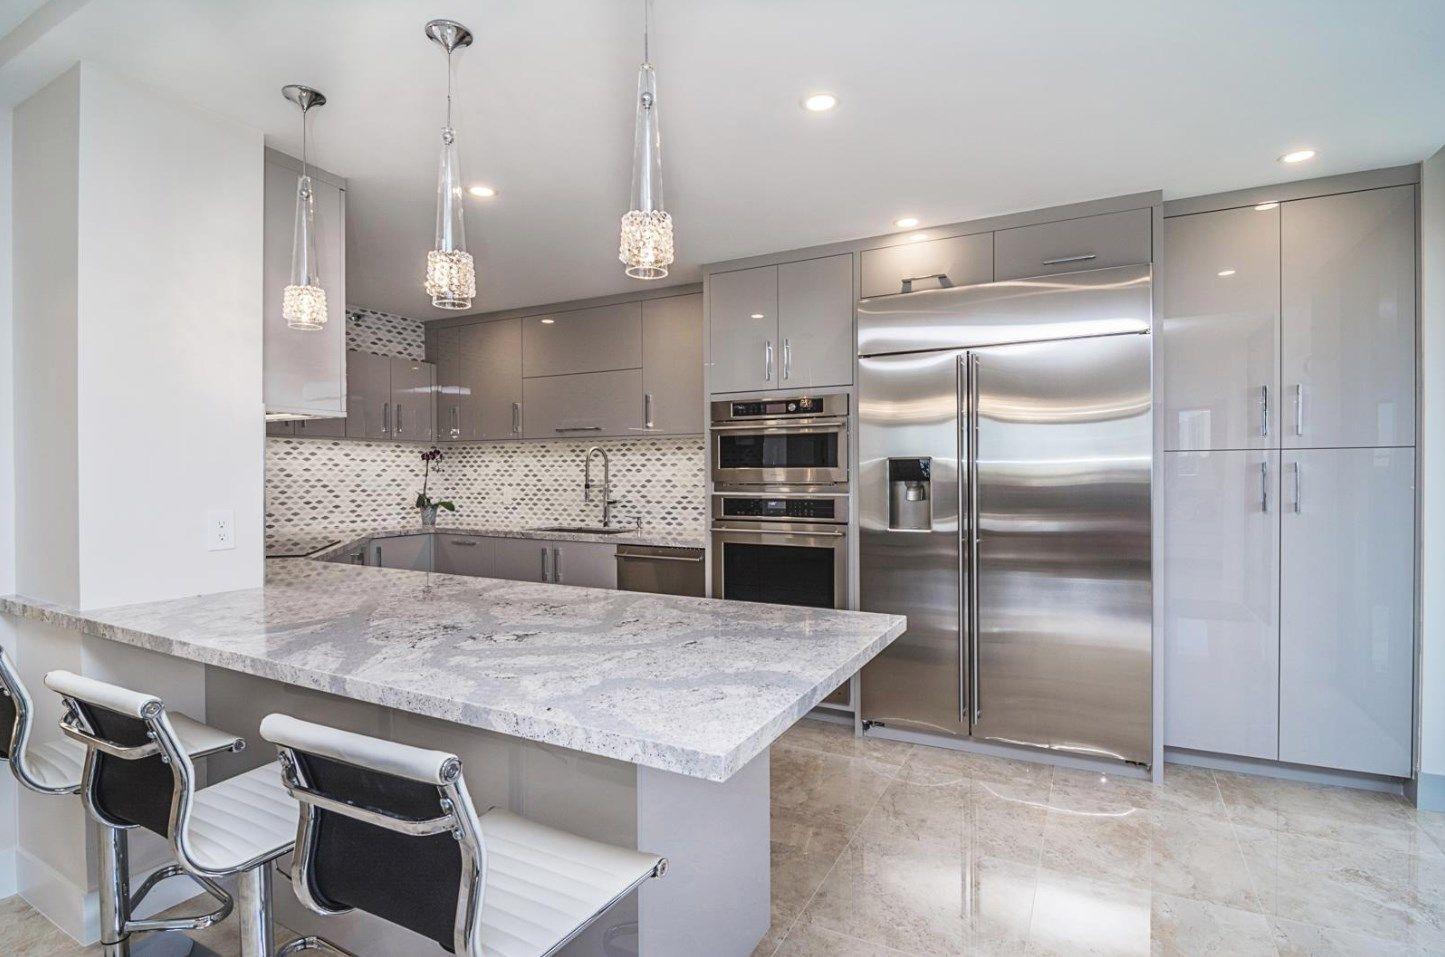 Sleek Classy And Modern You Can Find All Of Those In The Latest Ultracraft Cabinetry Kitchen Rem Beautiful Kitchen Designs Beautiful Kitchens Kitchen Design